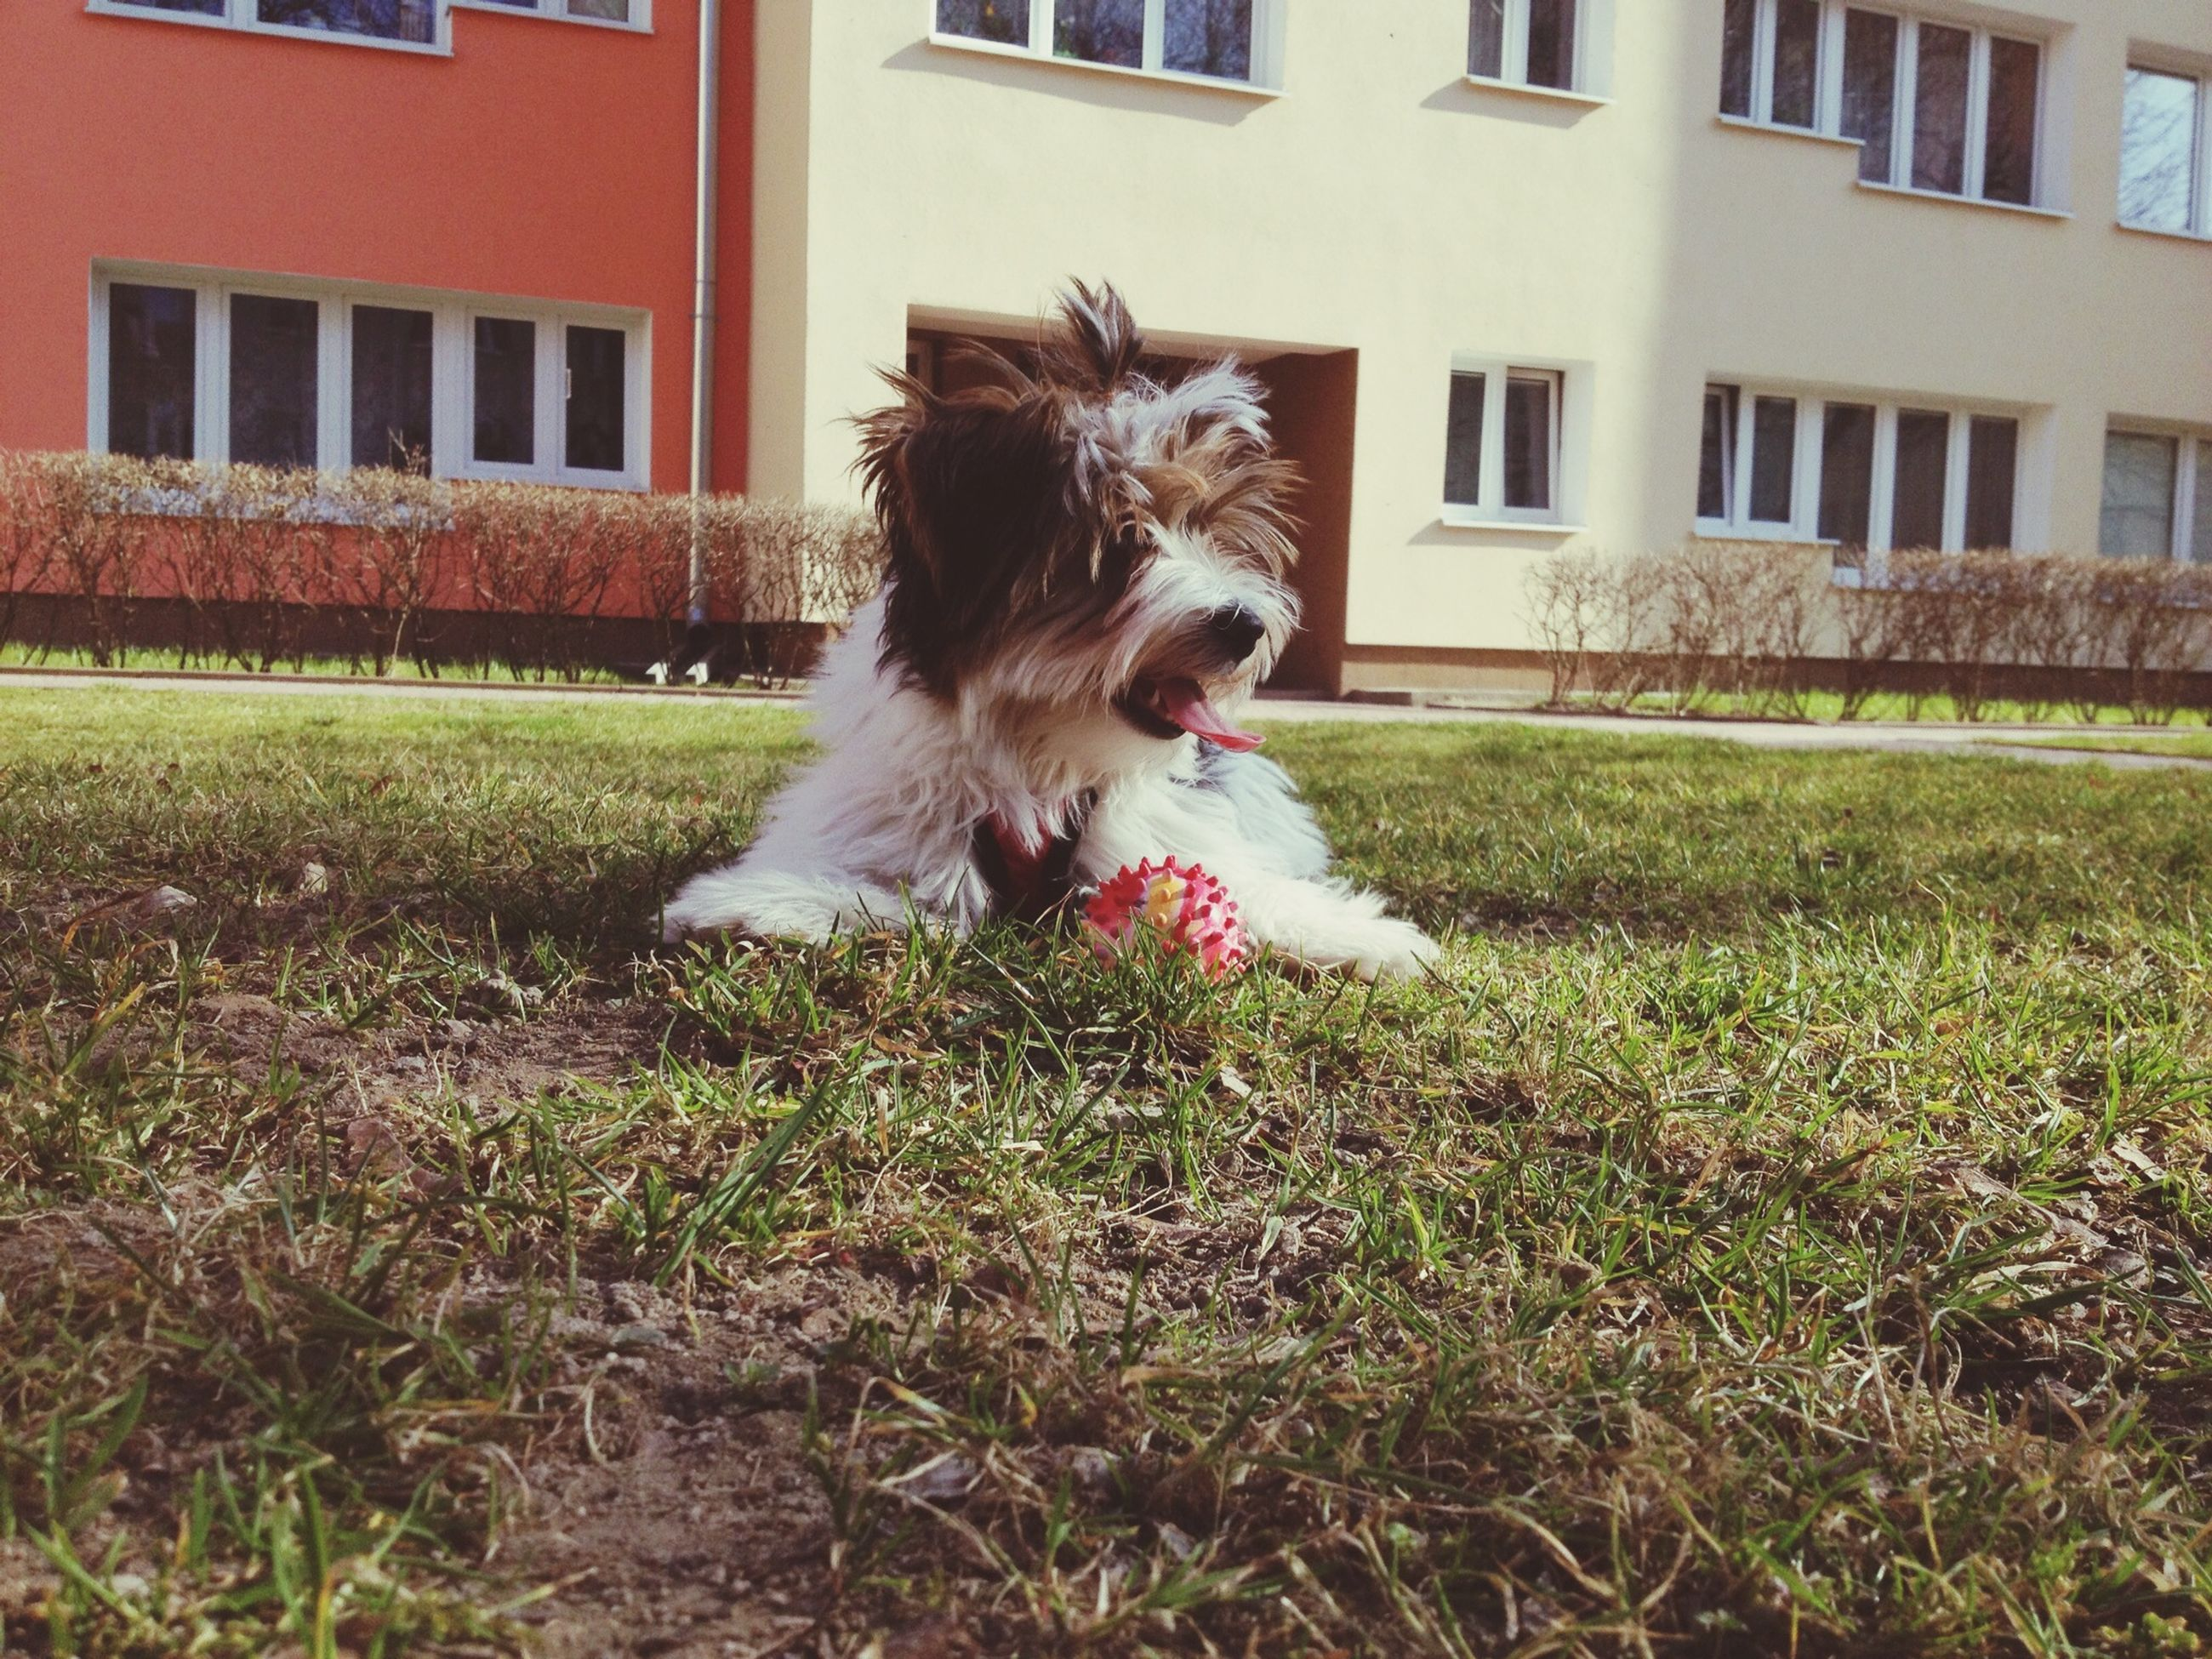 domestic animals, animal themes, grass, building exterior, one animal, architecture, built structure, pets, mammal, dog, lawn, house, field, grassy, front or back yard, day, no people, outdoors, plant, full length